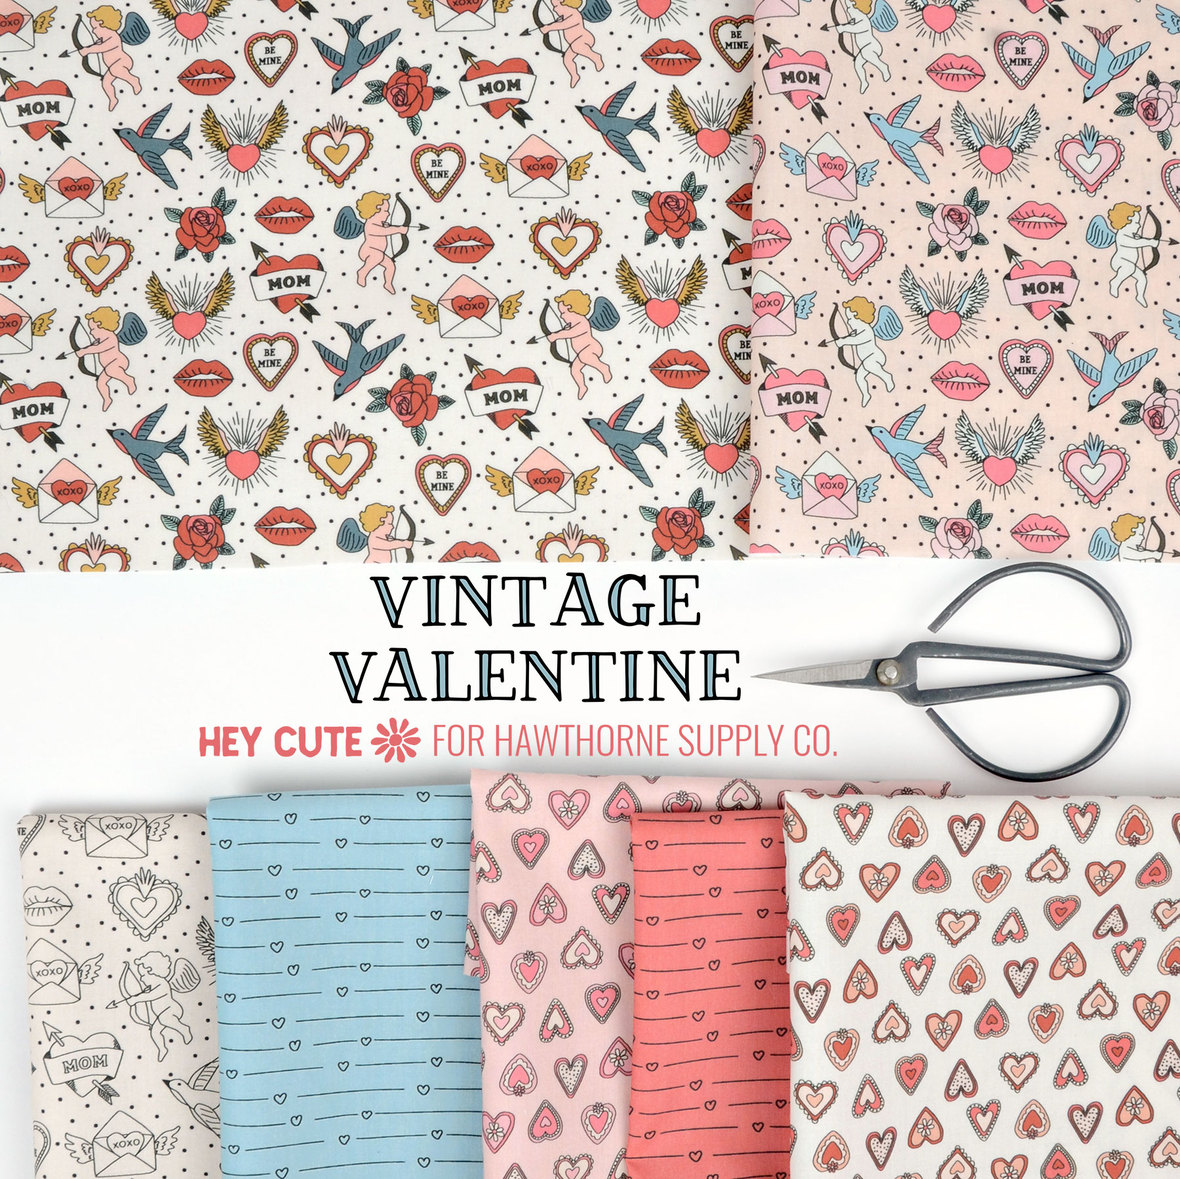 Vintage-Valentine-Fabric-Hey-Cute-Design-for-Hawthorne-Supply-Co